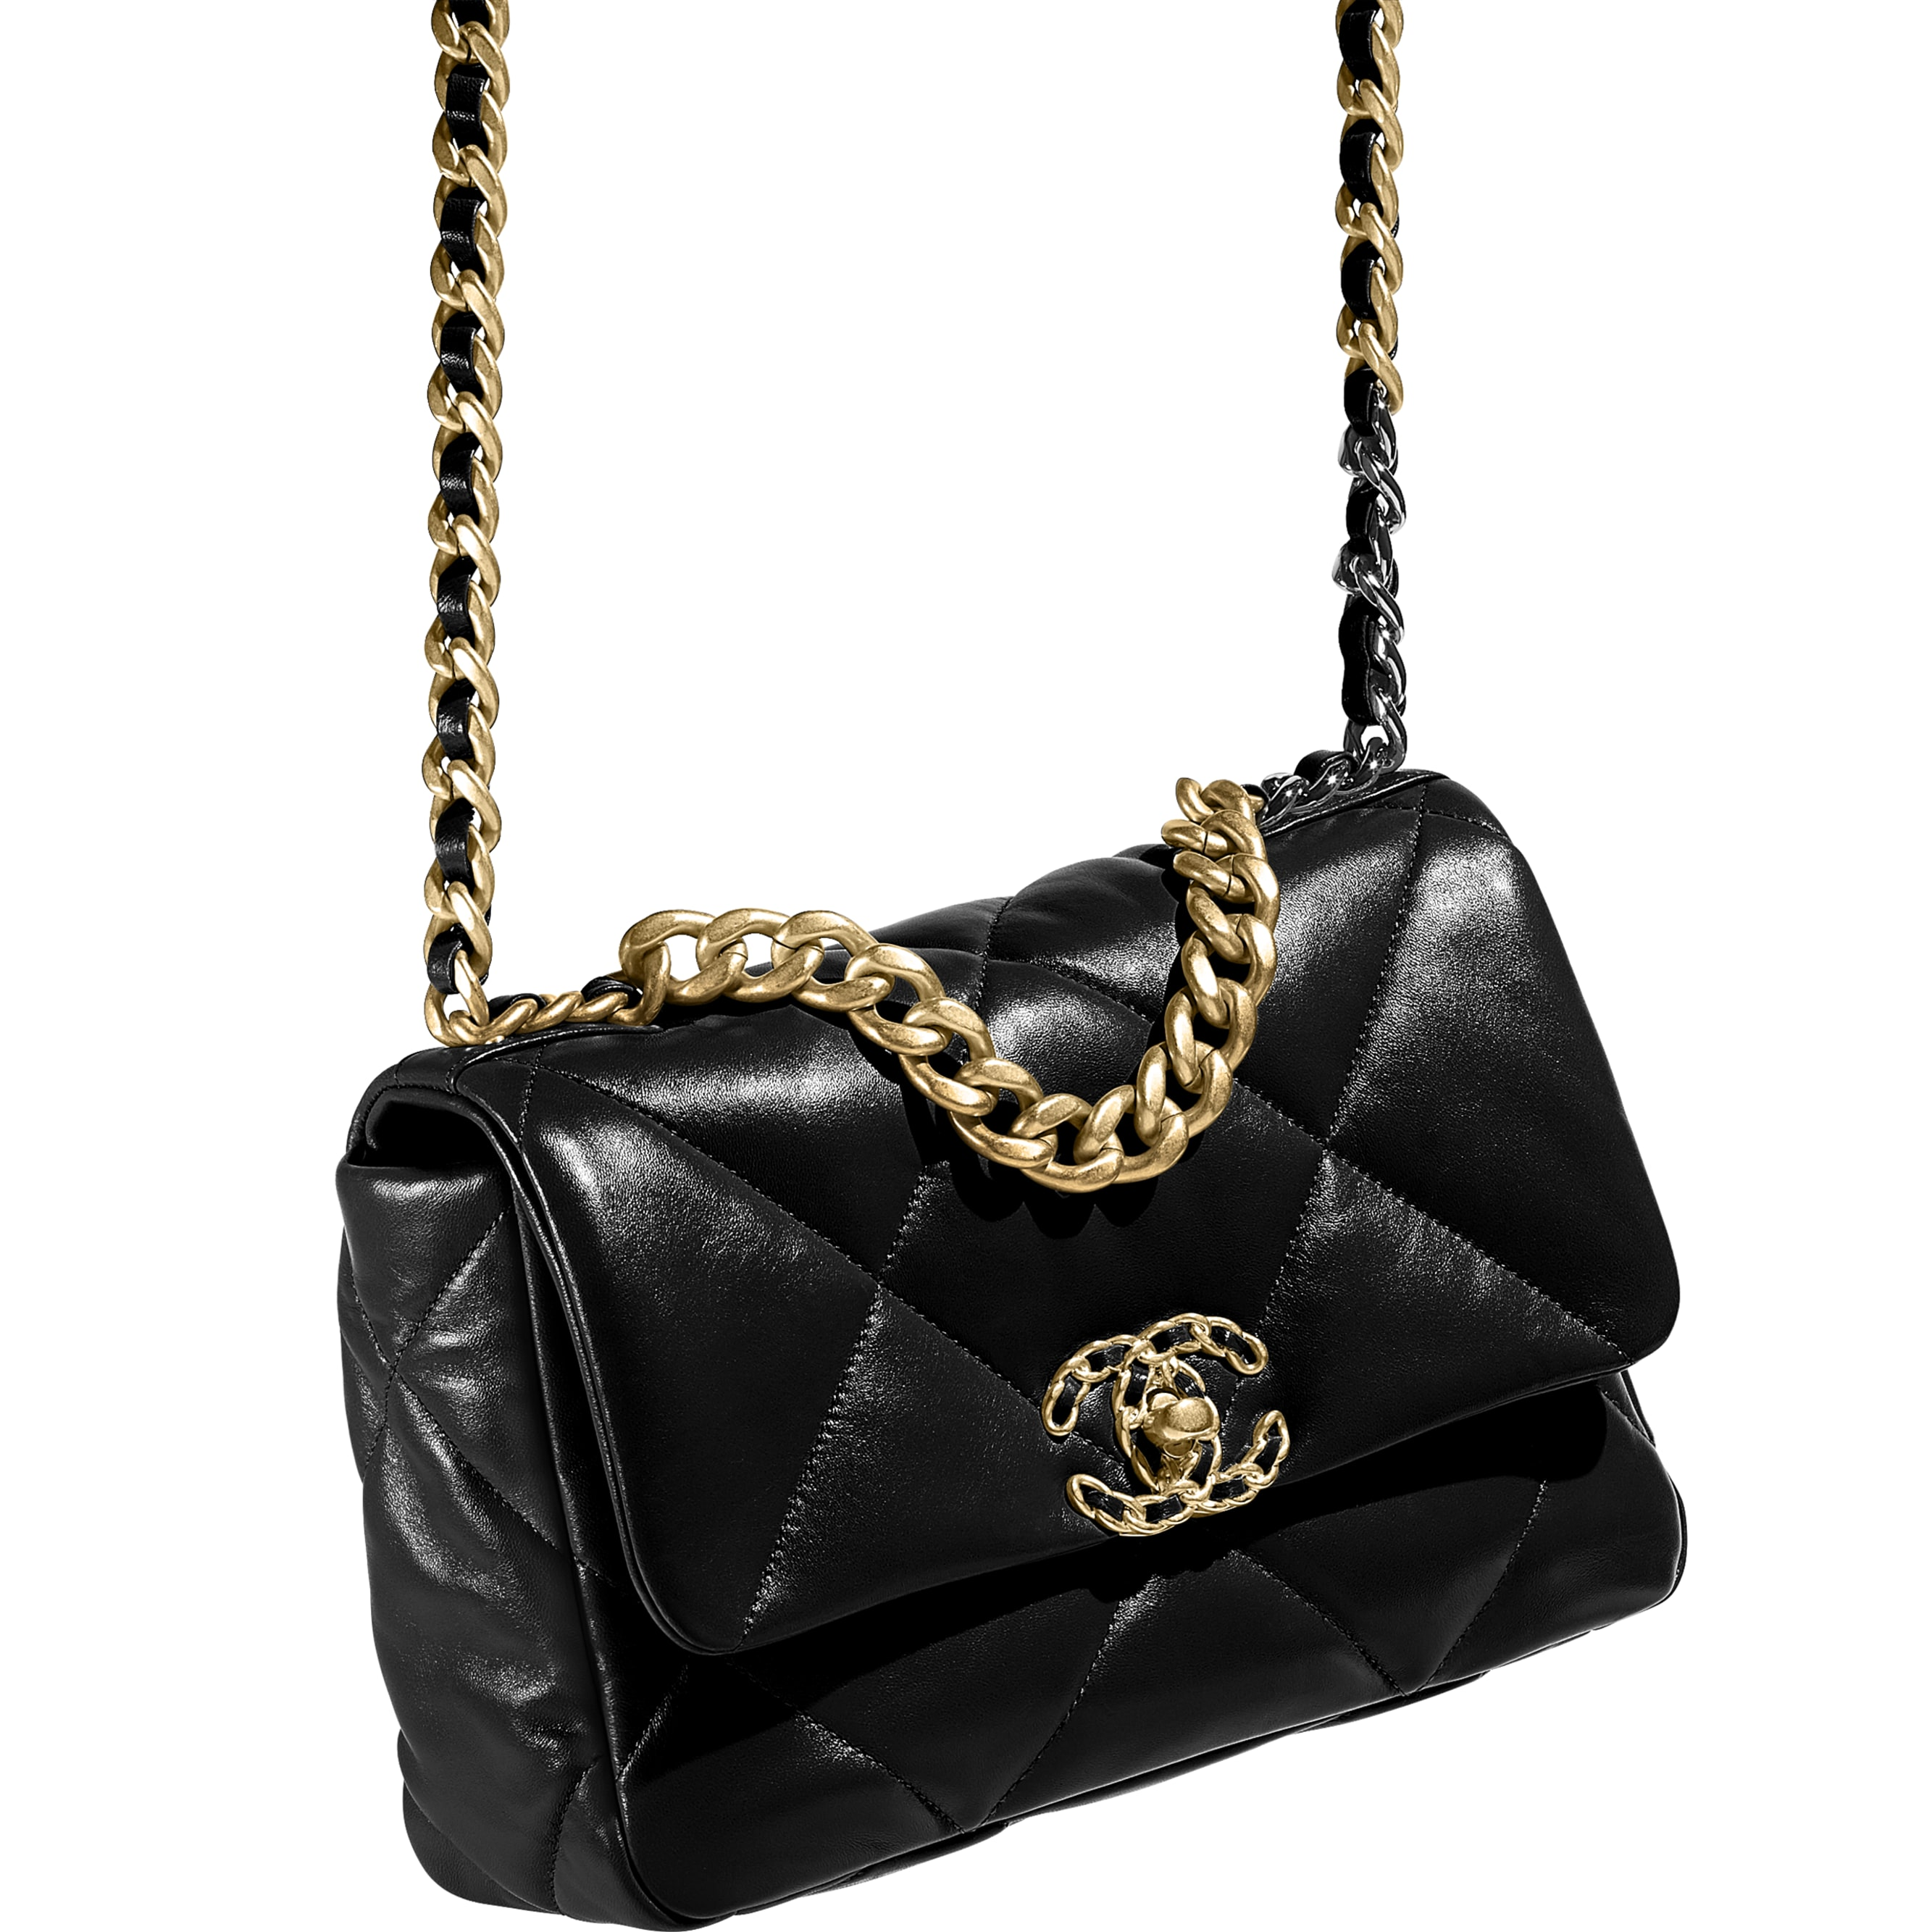 CHANEL 19 Flap Bag - Black - Lambskin, Gold-Tone, Silver-Tone & Ruthenium-Finish Metal - CHANEL - Extra view - see standard sized version